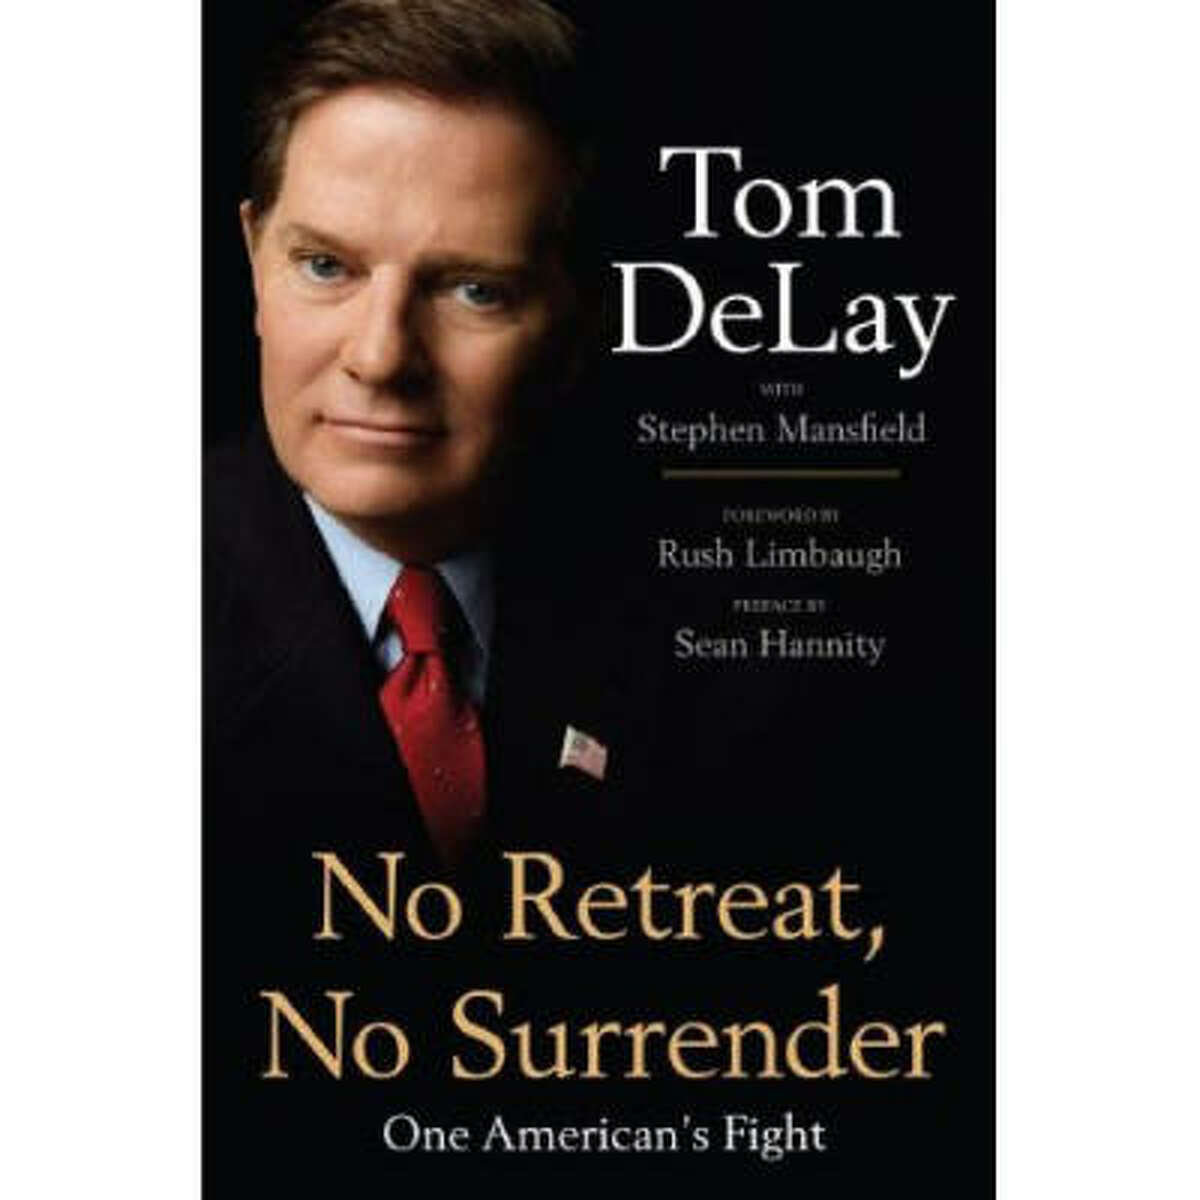 Tom DeLay's book was a manifesto for the conservative movement.